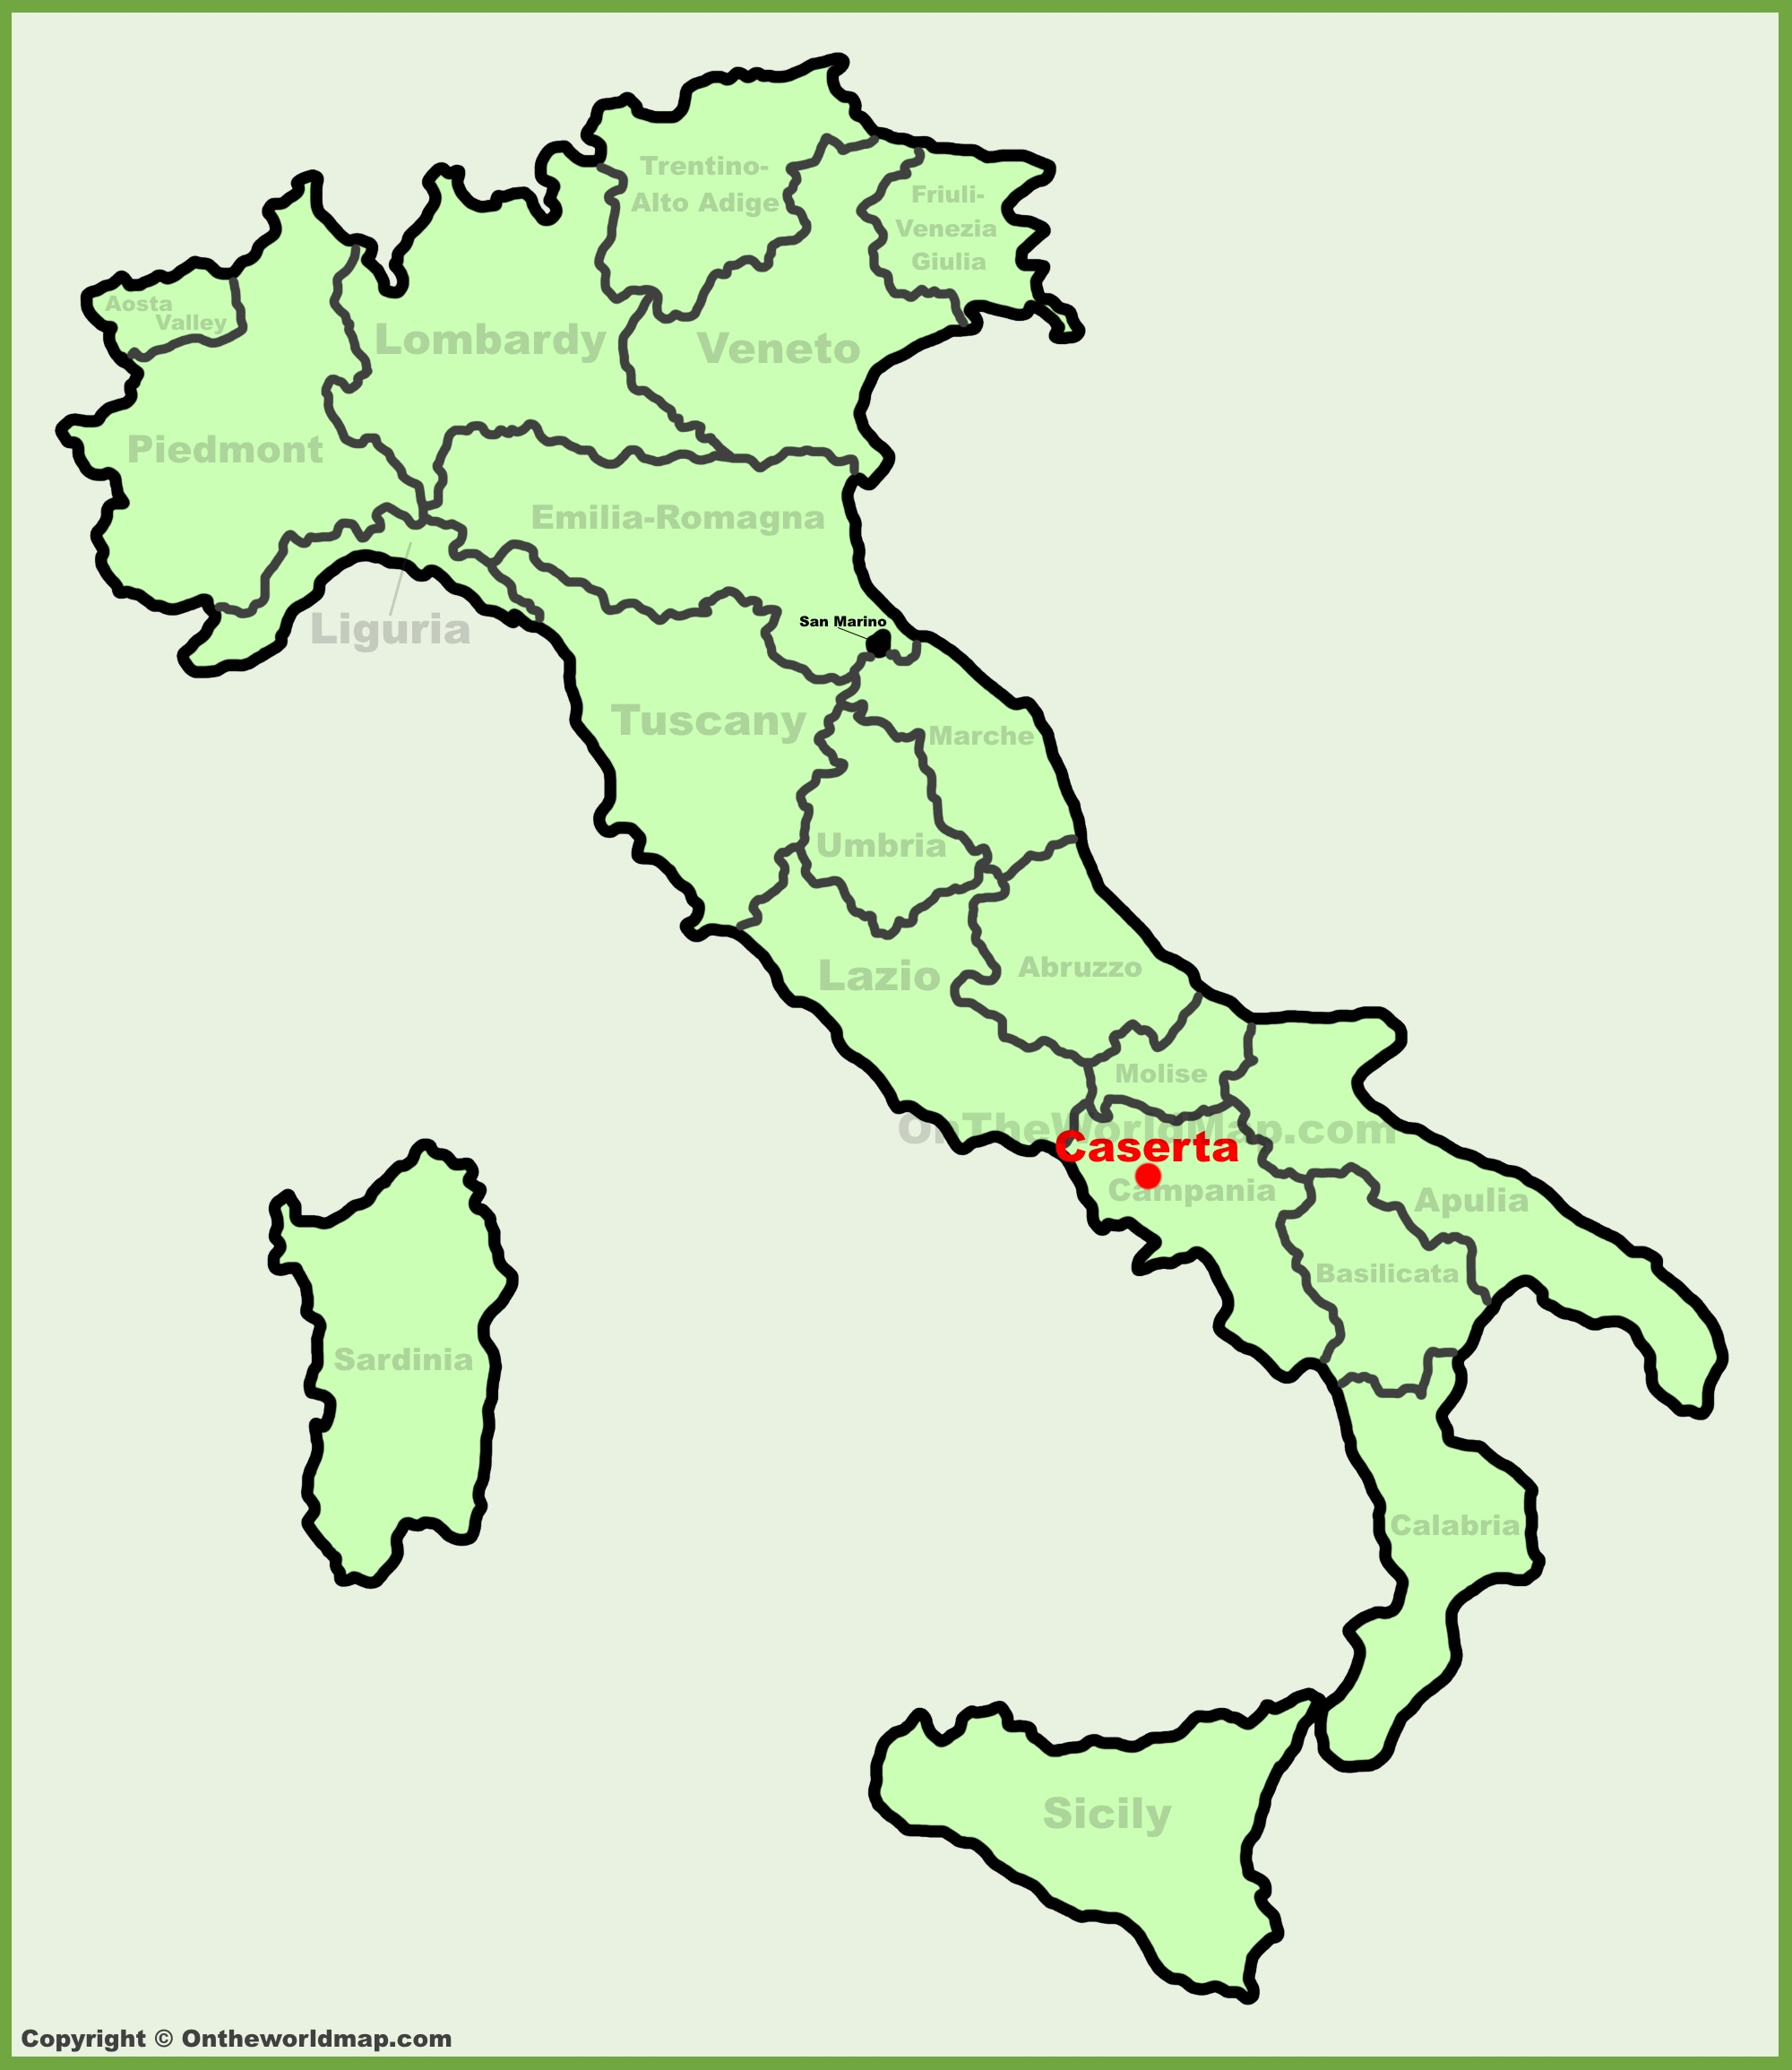 Caserta location on the Italy map